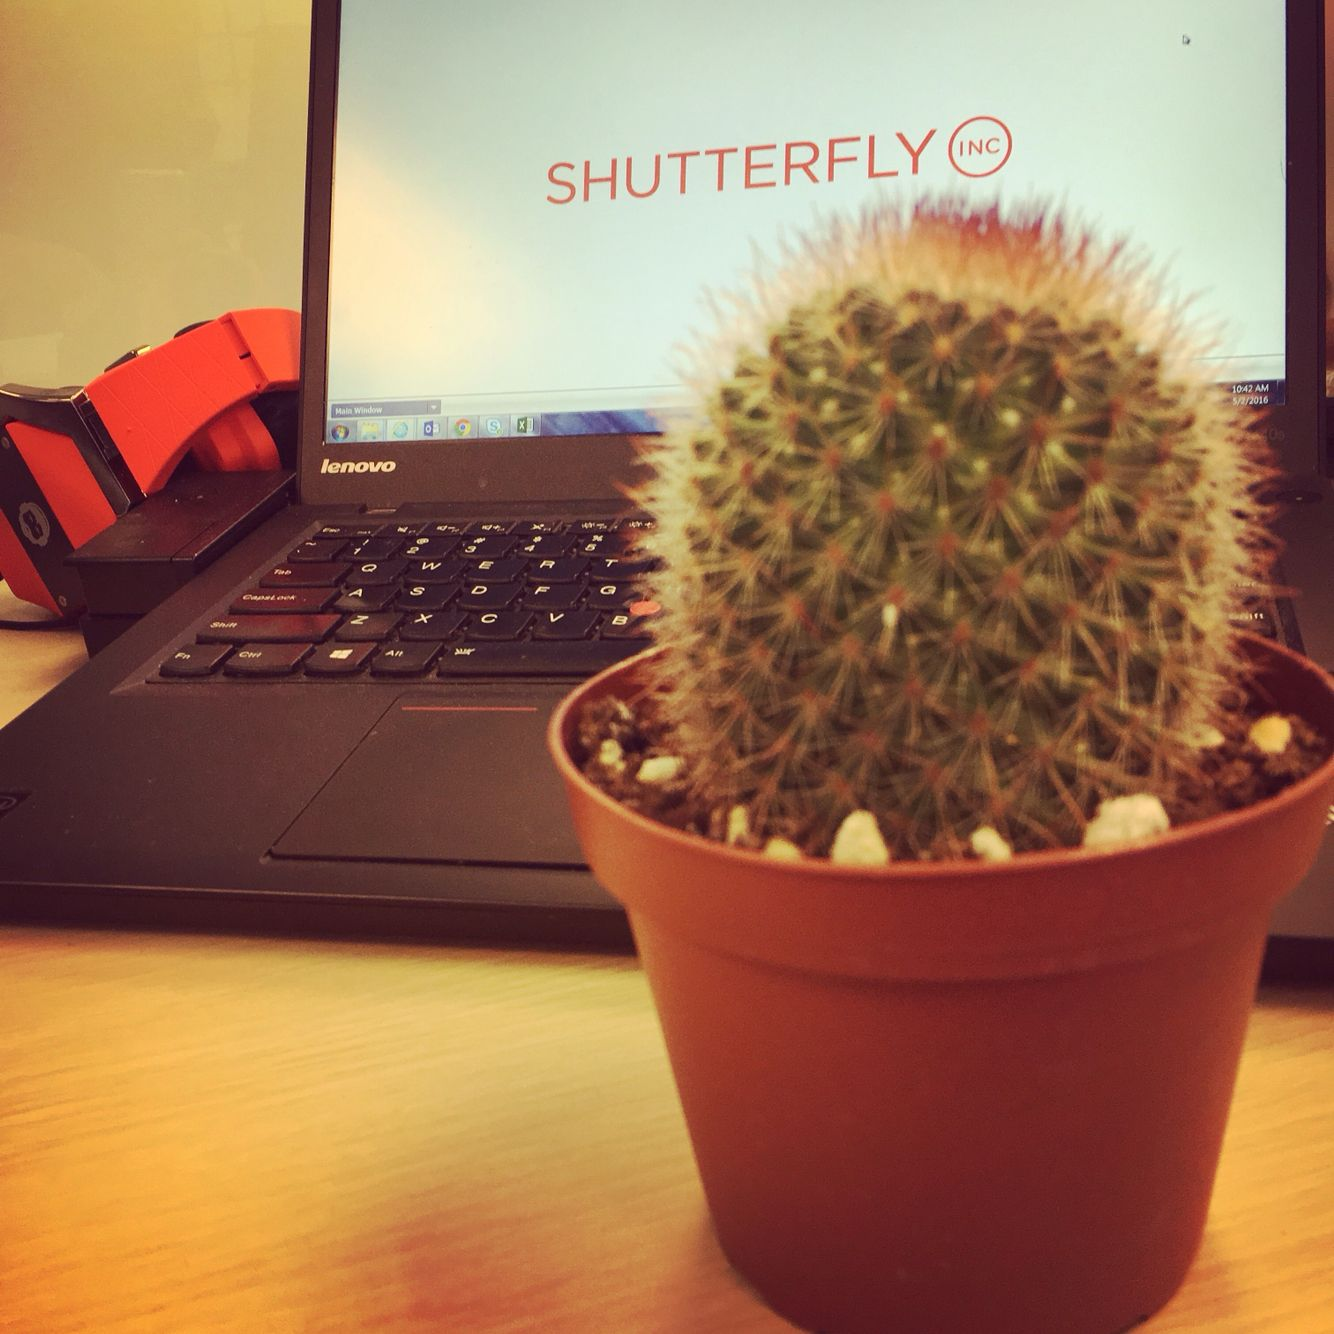 My office cactus archie hoping to keep him alive and healthy